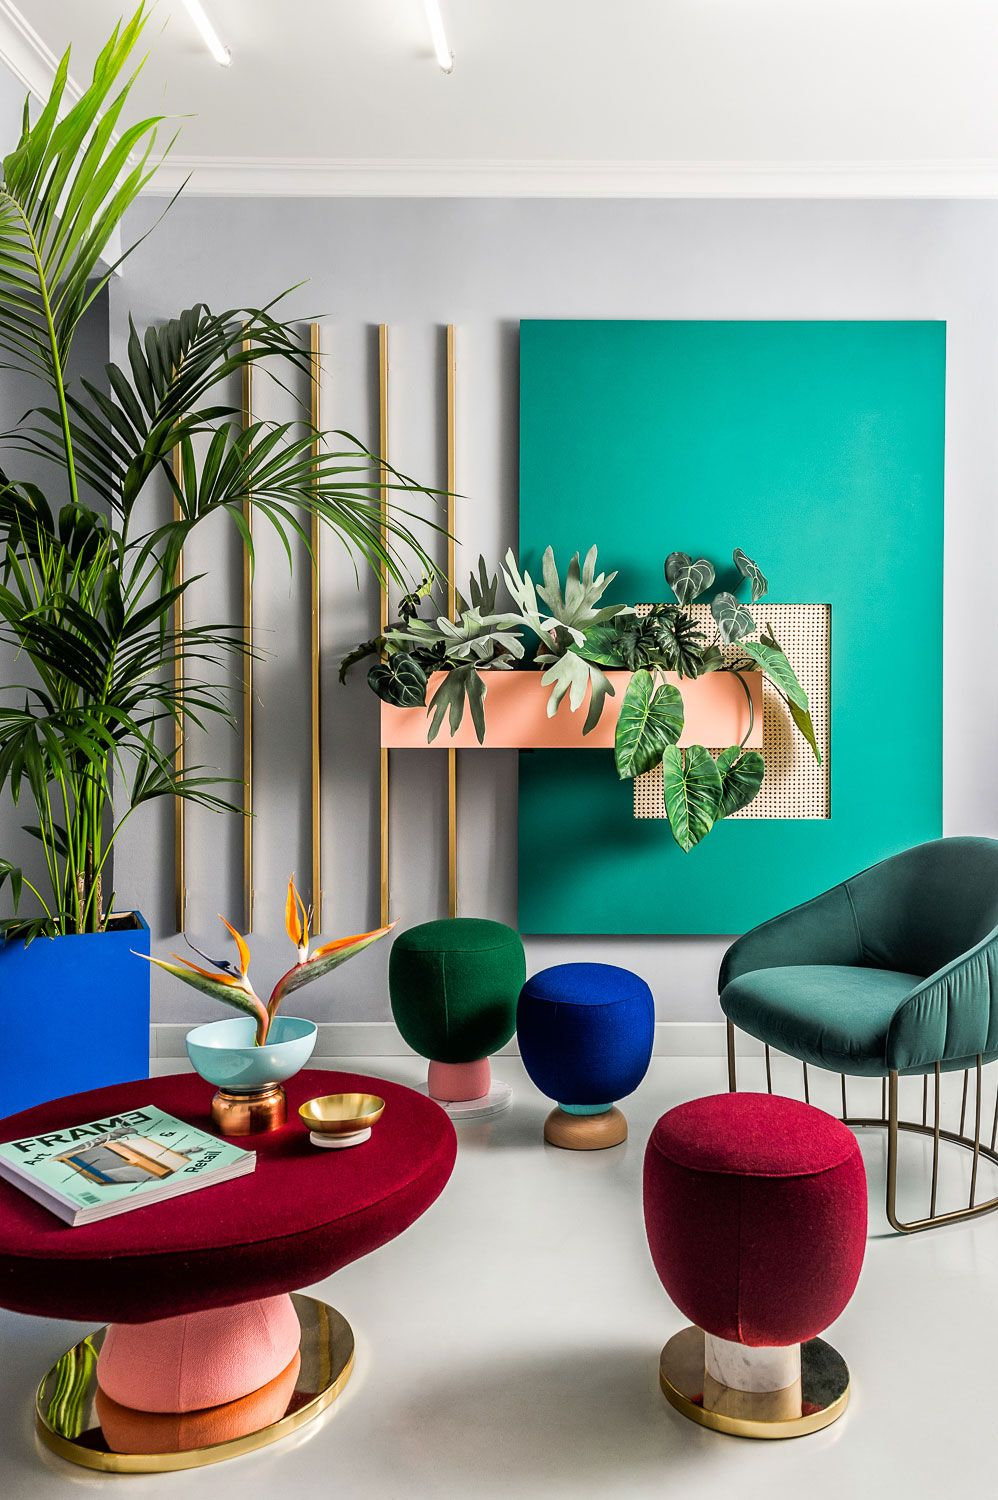 Color scheme inspiration bright colours and geometric forms used by the memphis group influenced interior design of masquespacio   studio space in also hua baobao xiaochun on pinterest rh